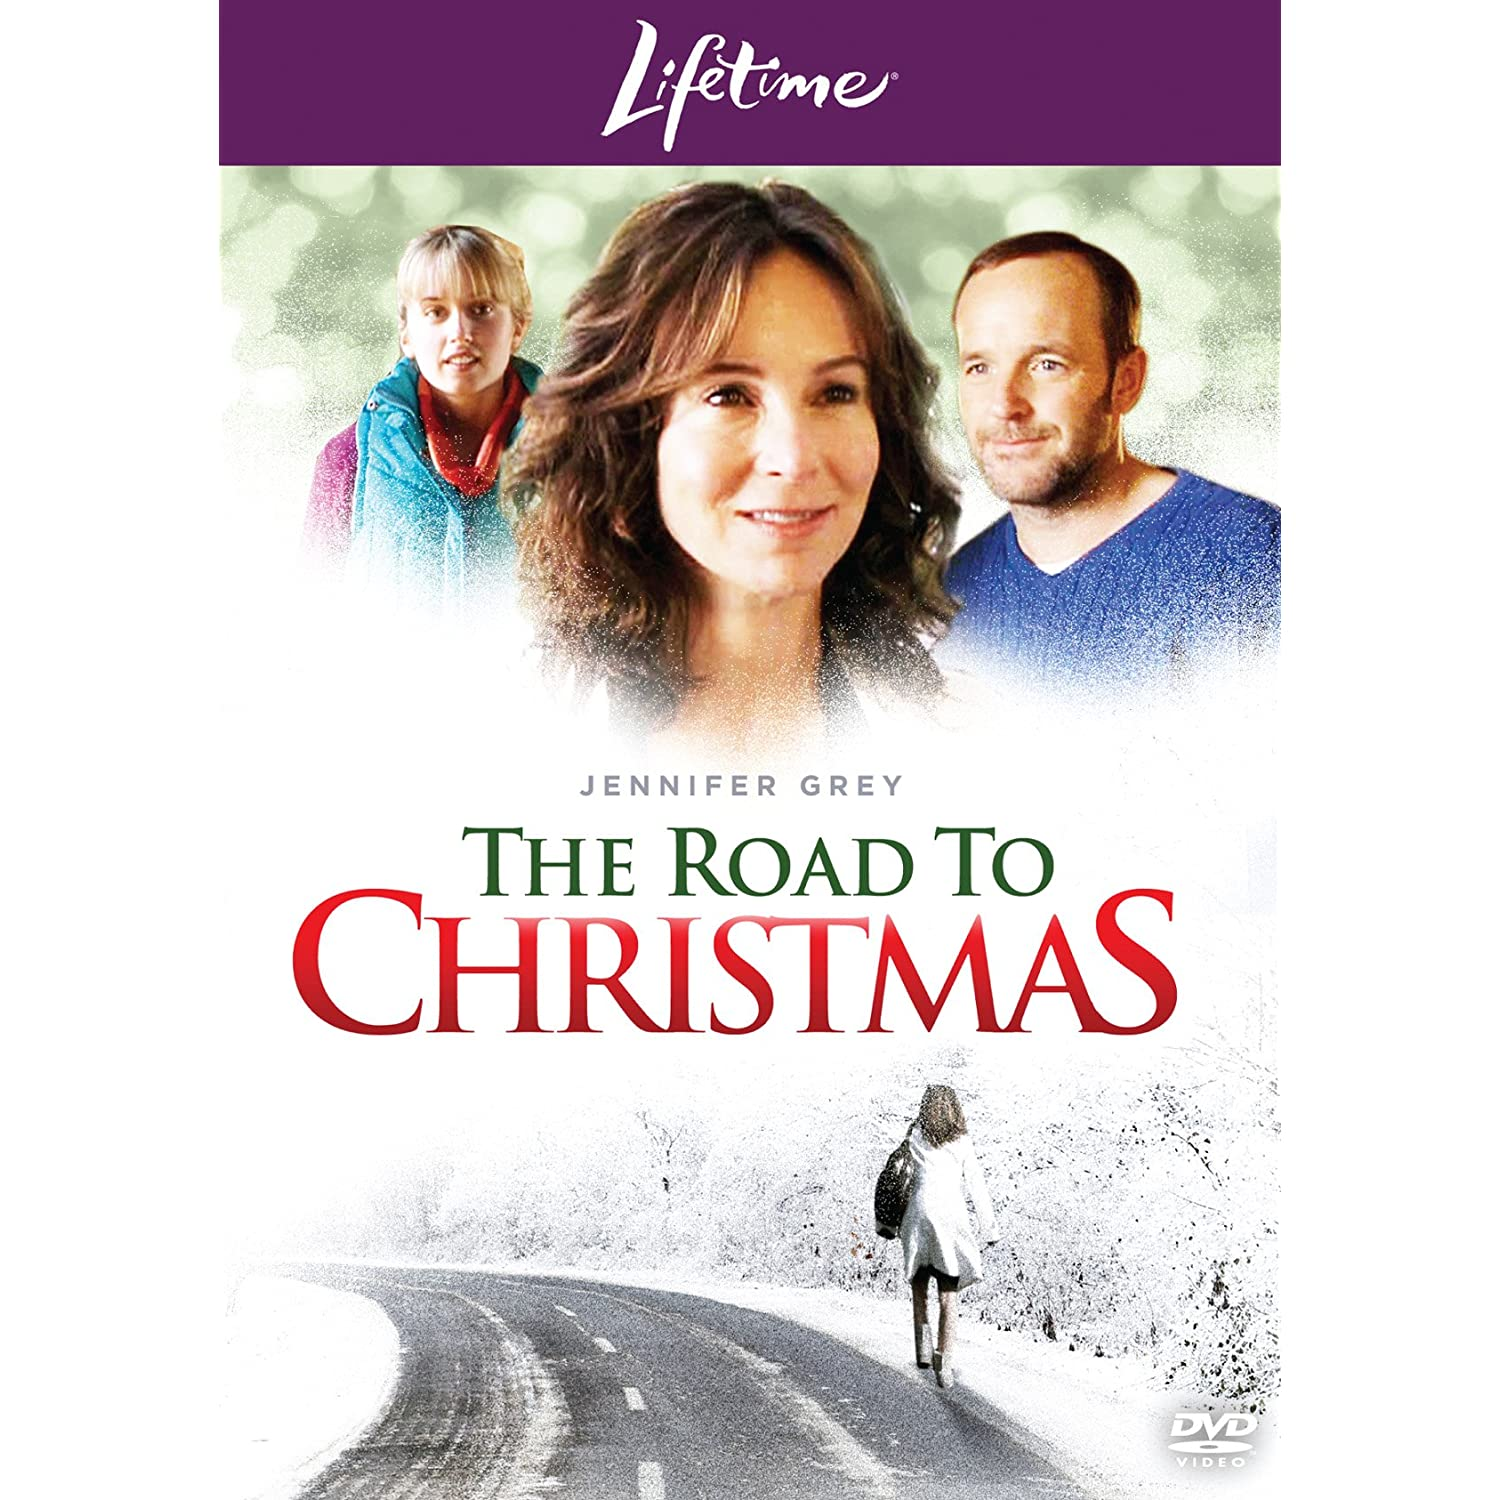 The Road To Christmas 2006 DvDrip[Eng]-greenbud1969